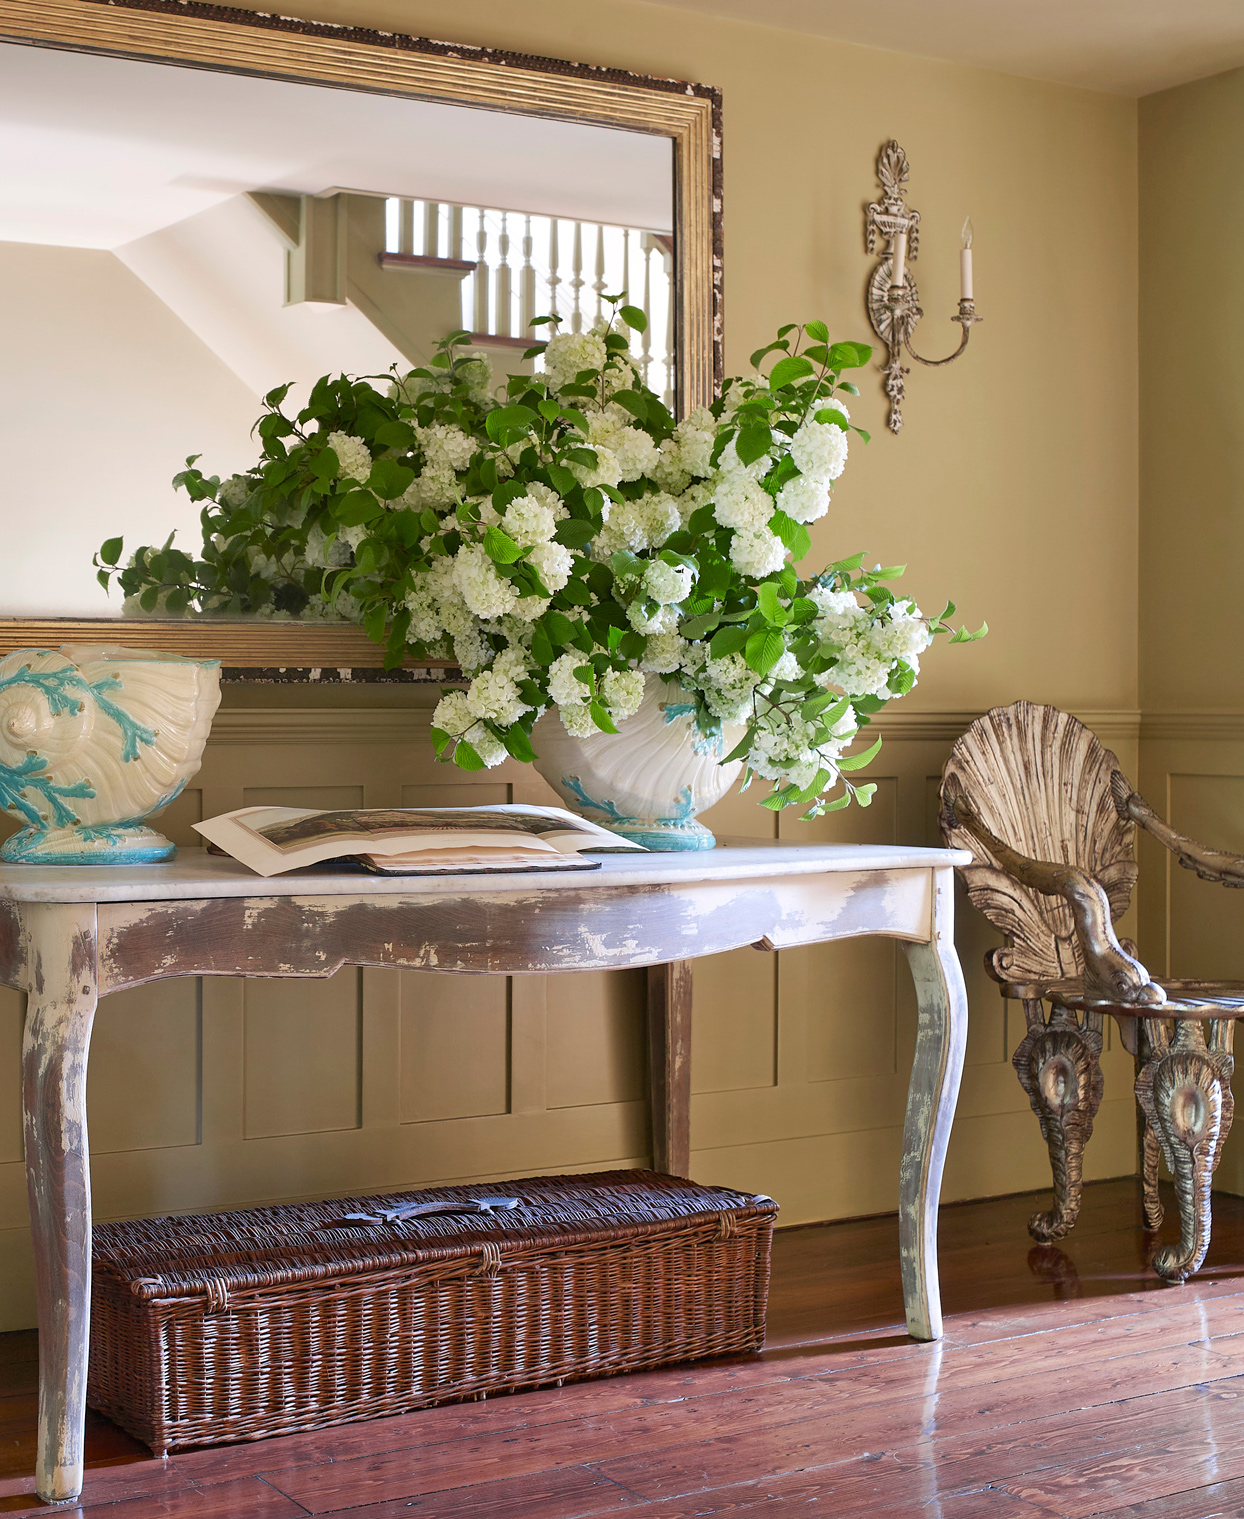 venetian-style shell chairs flank an antique swedish table